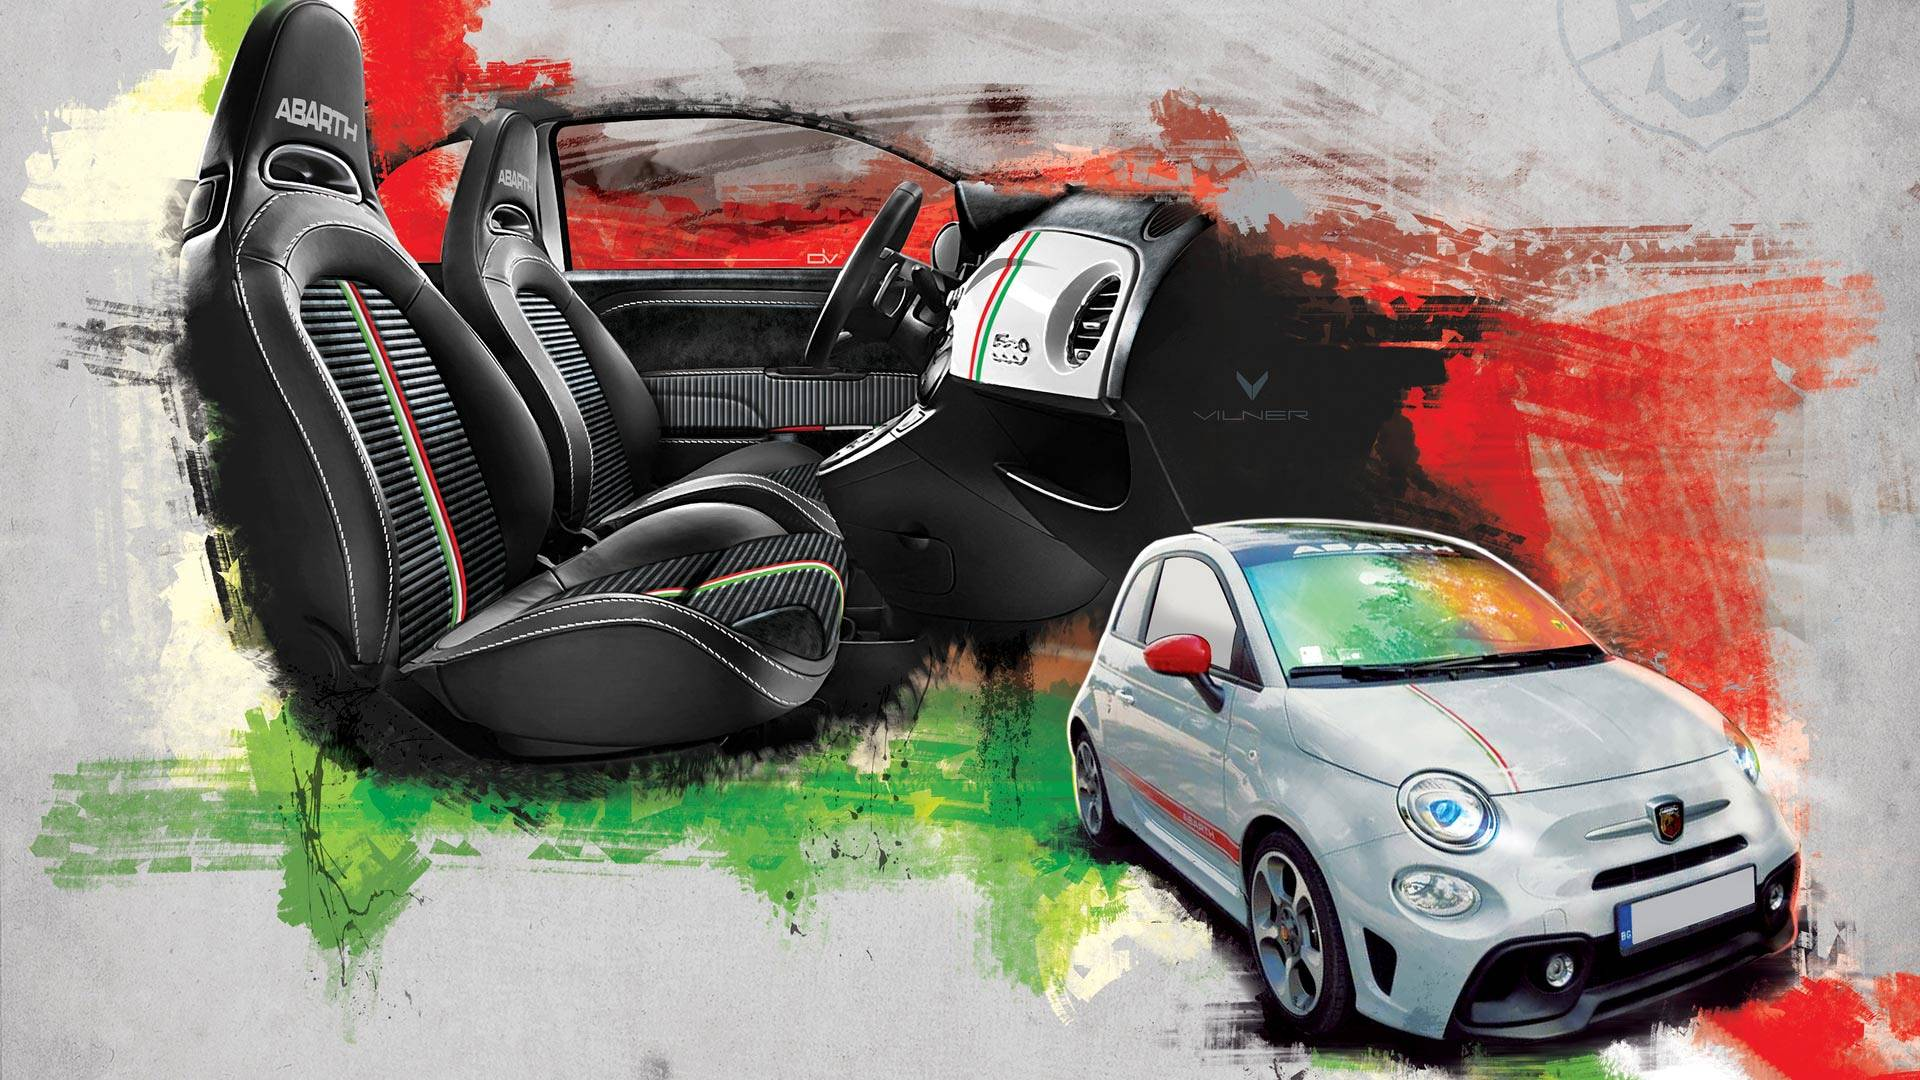 Photos Vilner Ameliore La Tres Charmante Abarth 595